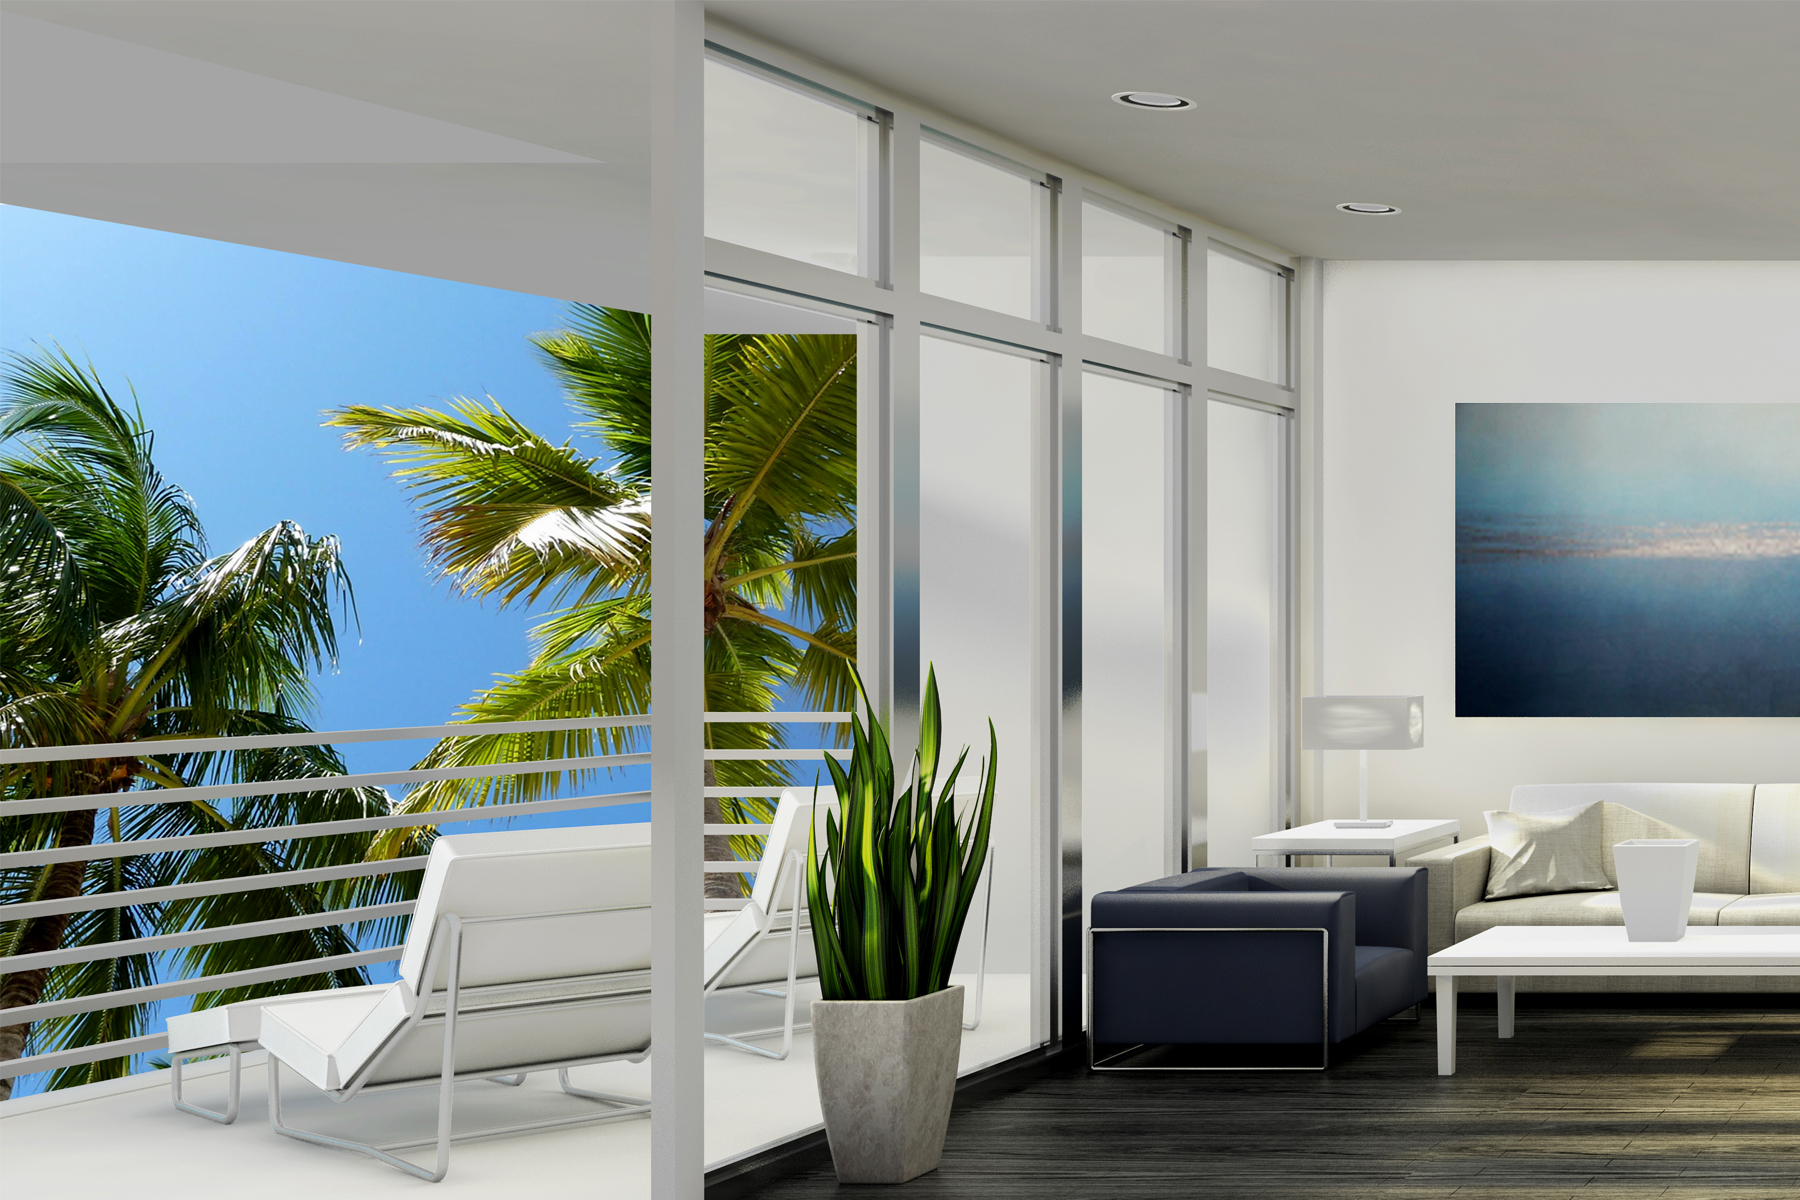 Condominiums for Sale at 111 Se 1st Avenue 403, Delray Beach, Florida 33444 United States